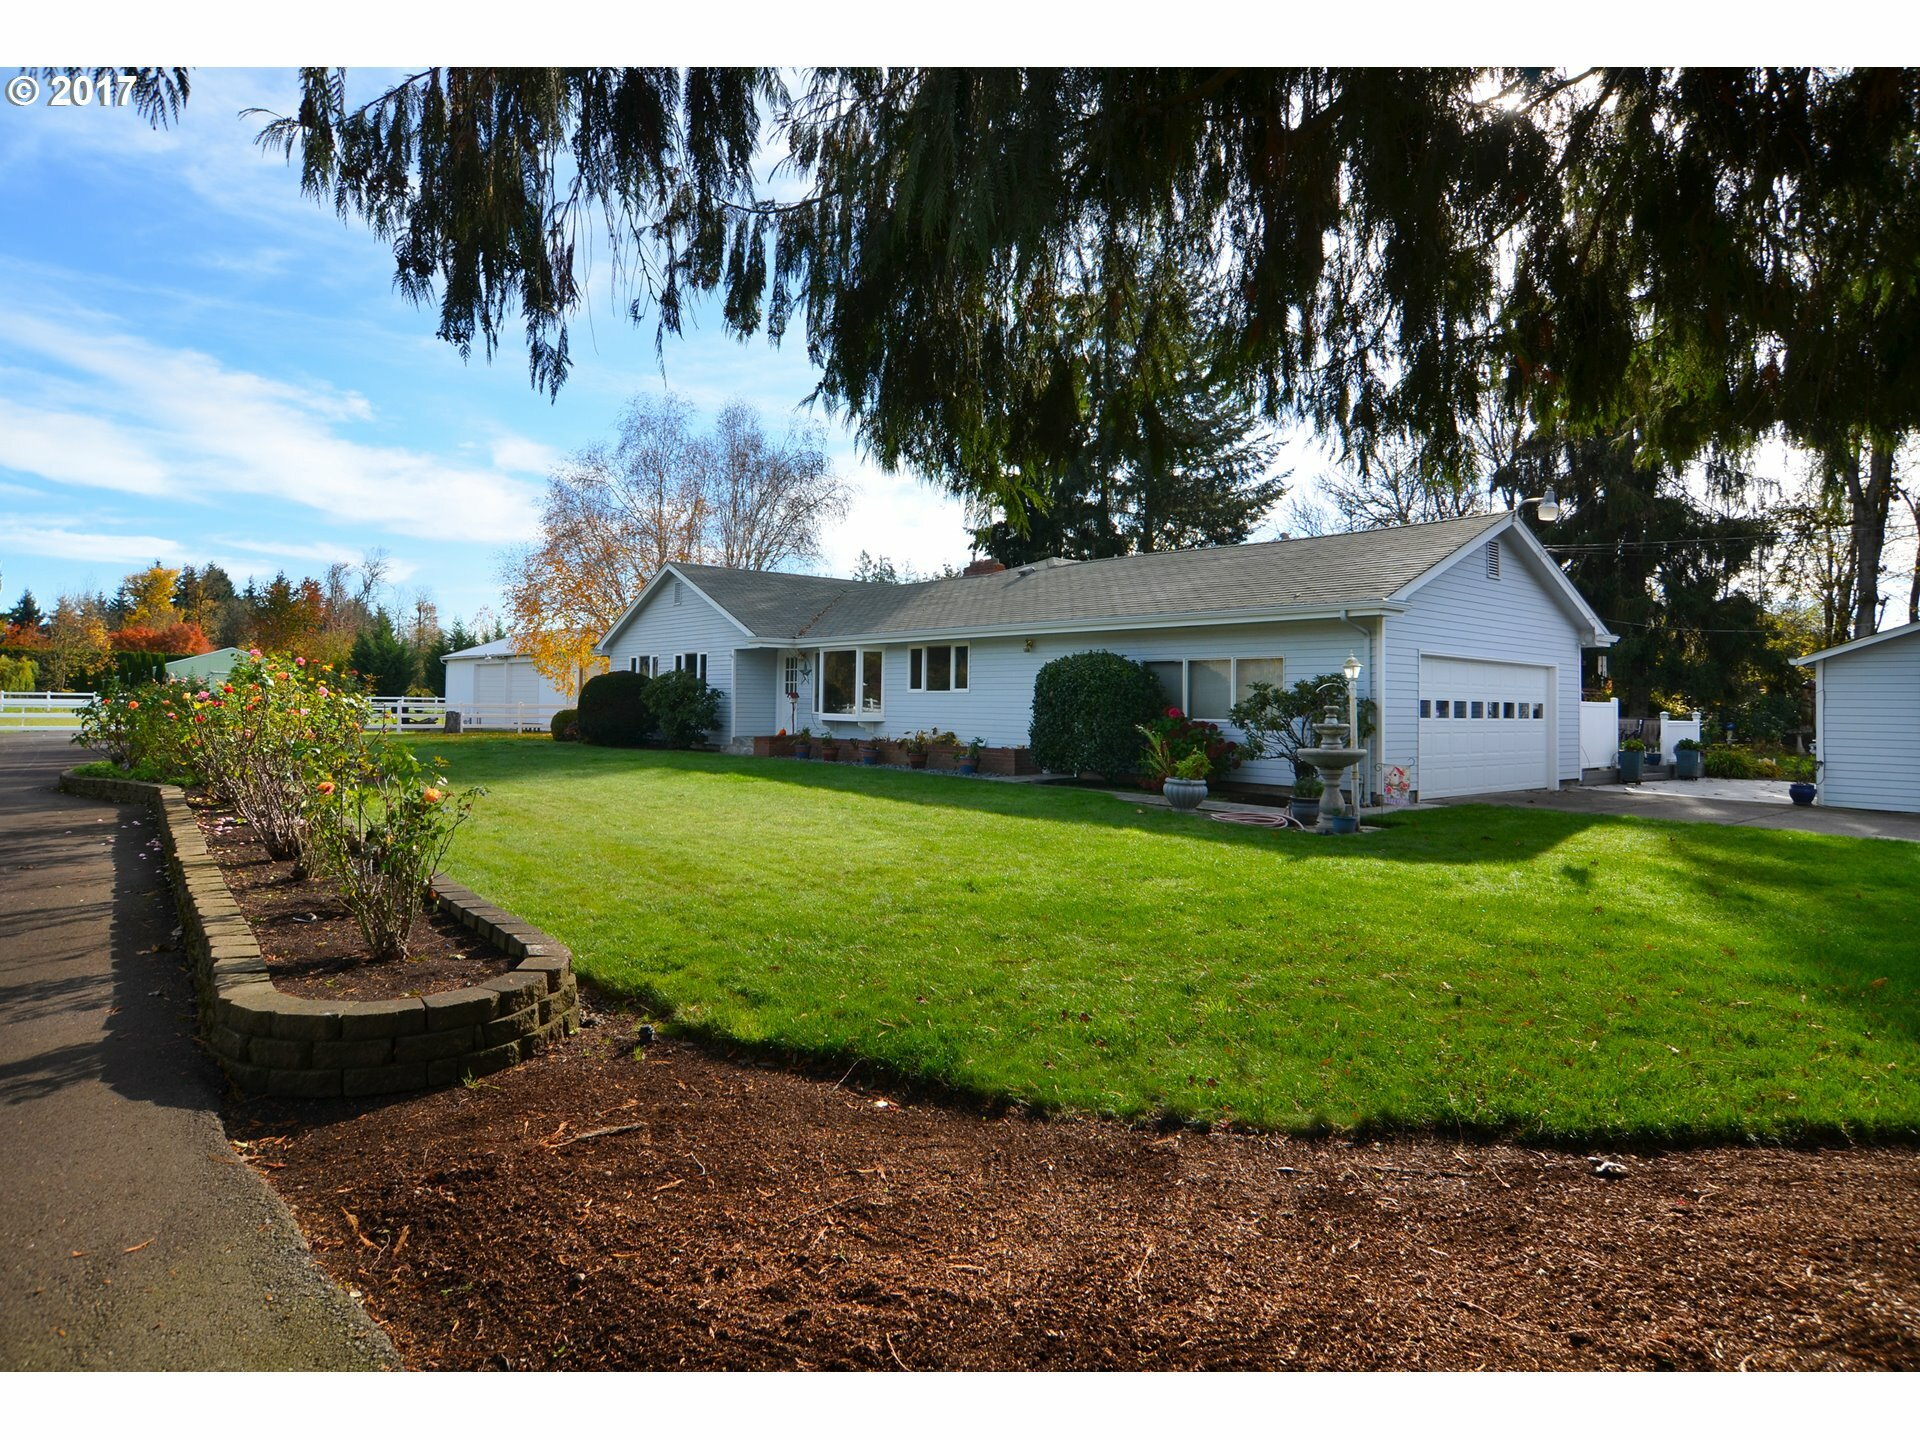 30536 Beacon Dr, Junction City, OR - USA (photo 1)